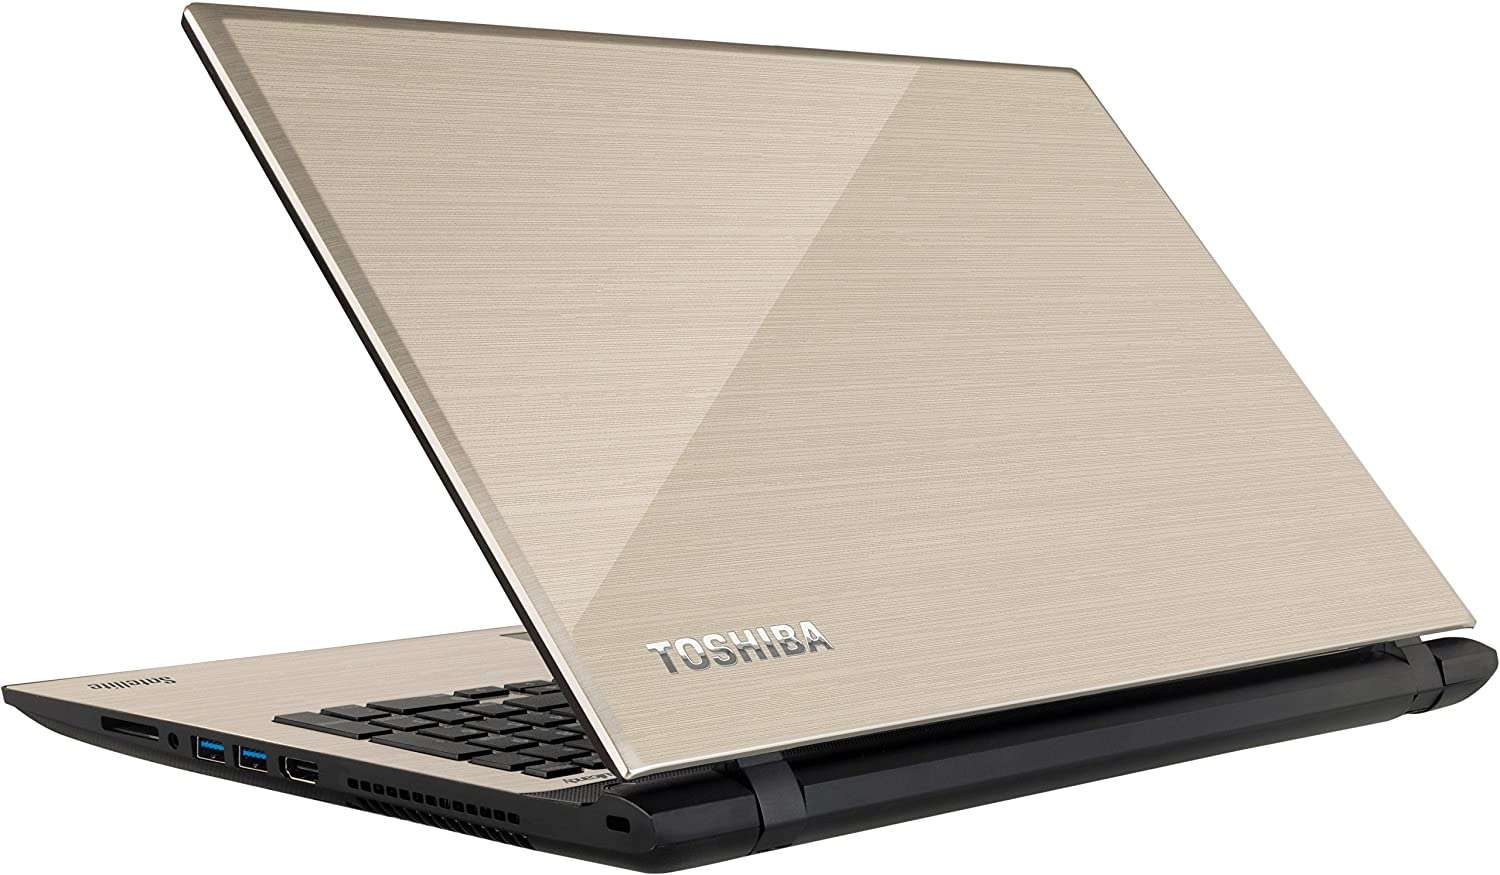 Toshiba Satellite L50-C-275 15 Zoll Notebook